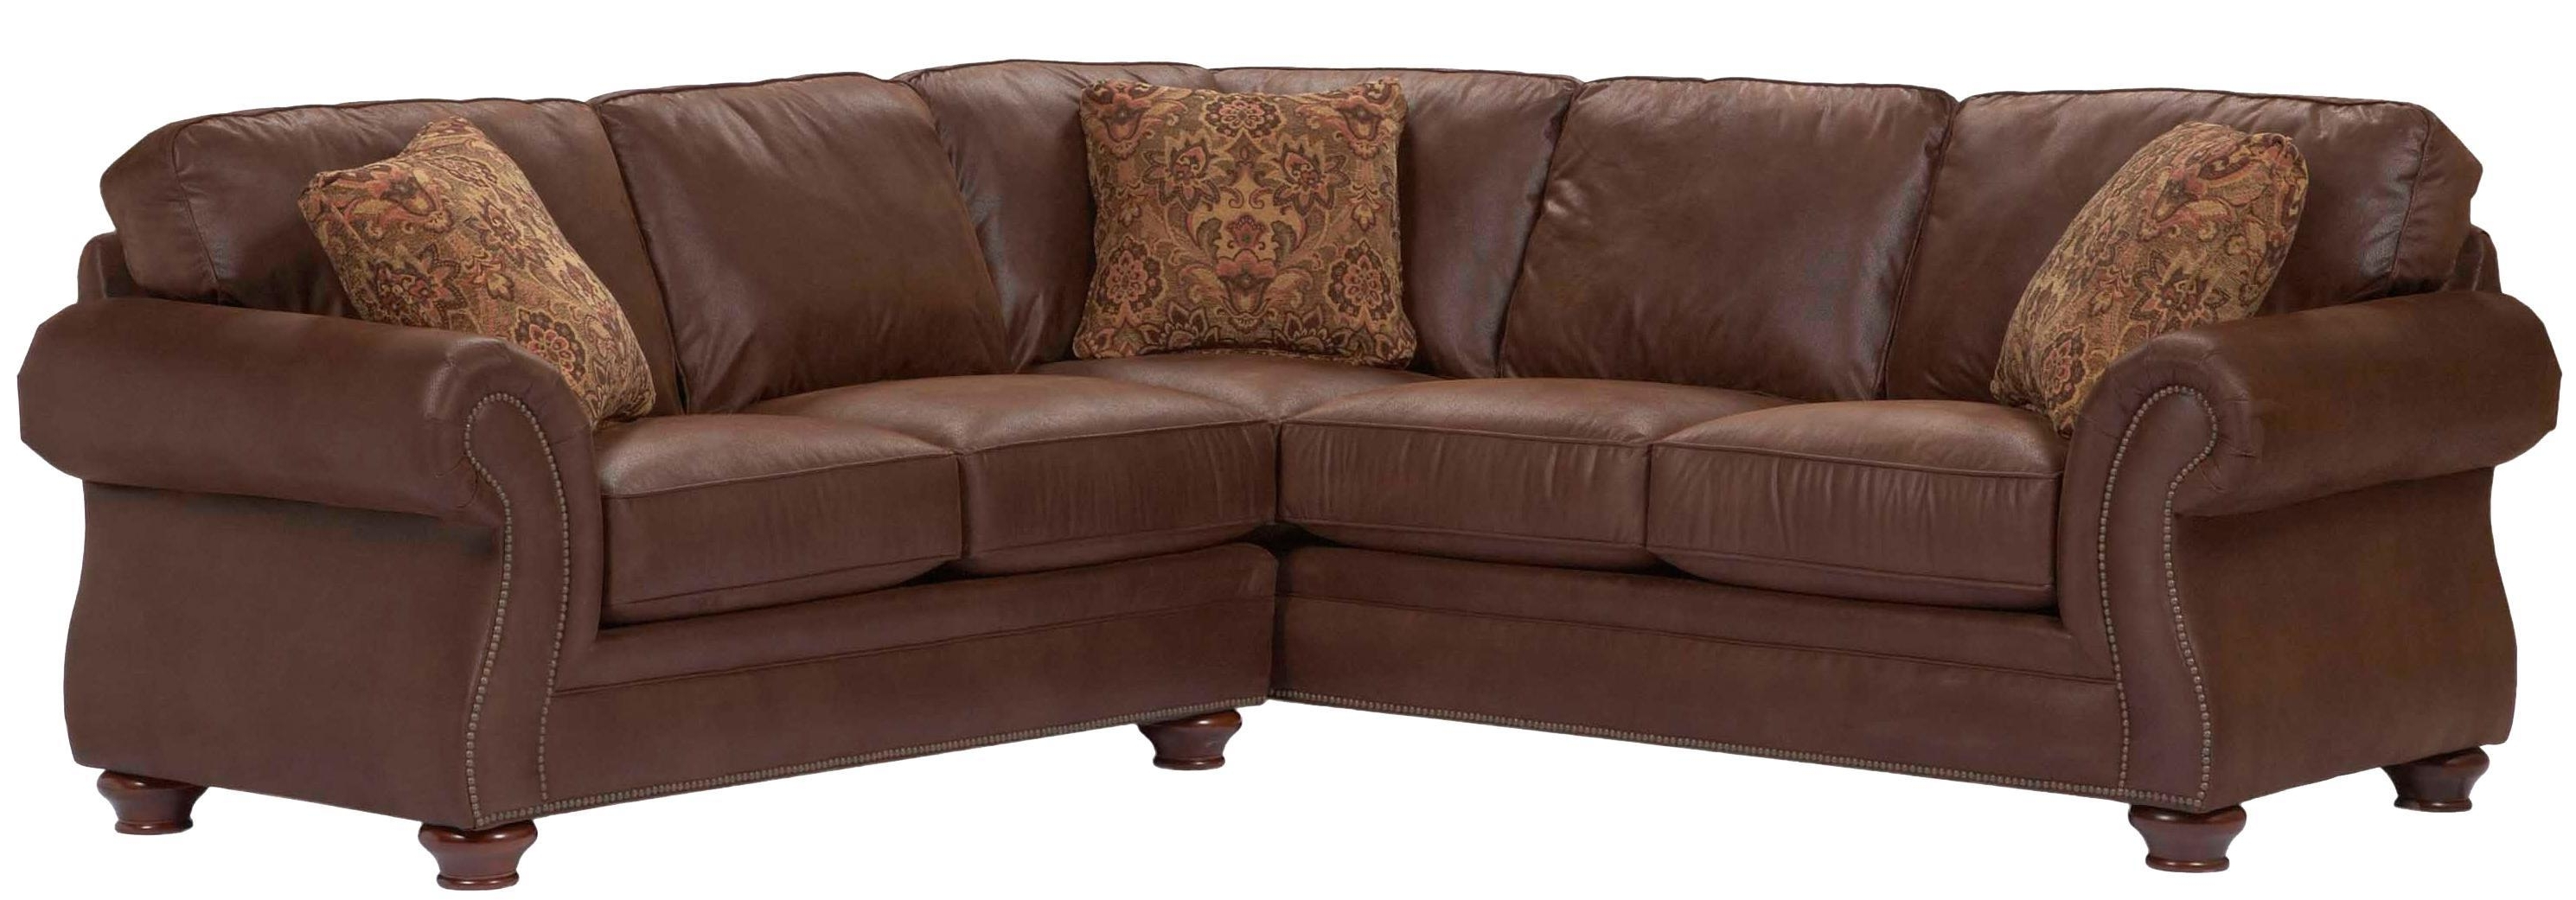 Latest Tuscaloosa Sectional Sofas With Broyhill Furniture Laramie 2 Piece Corner Sectional Sofa – Ahfa (View 20 of 20)